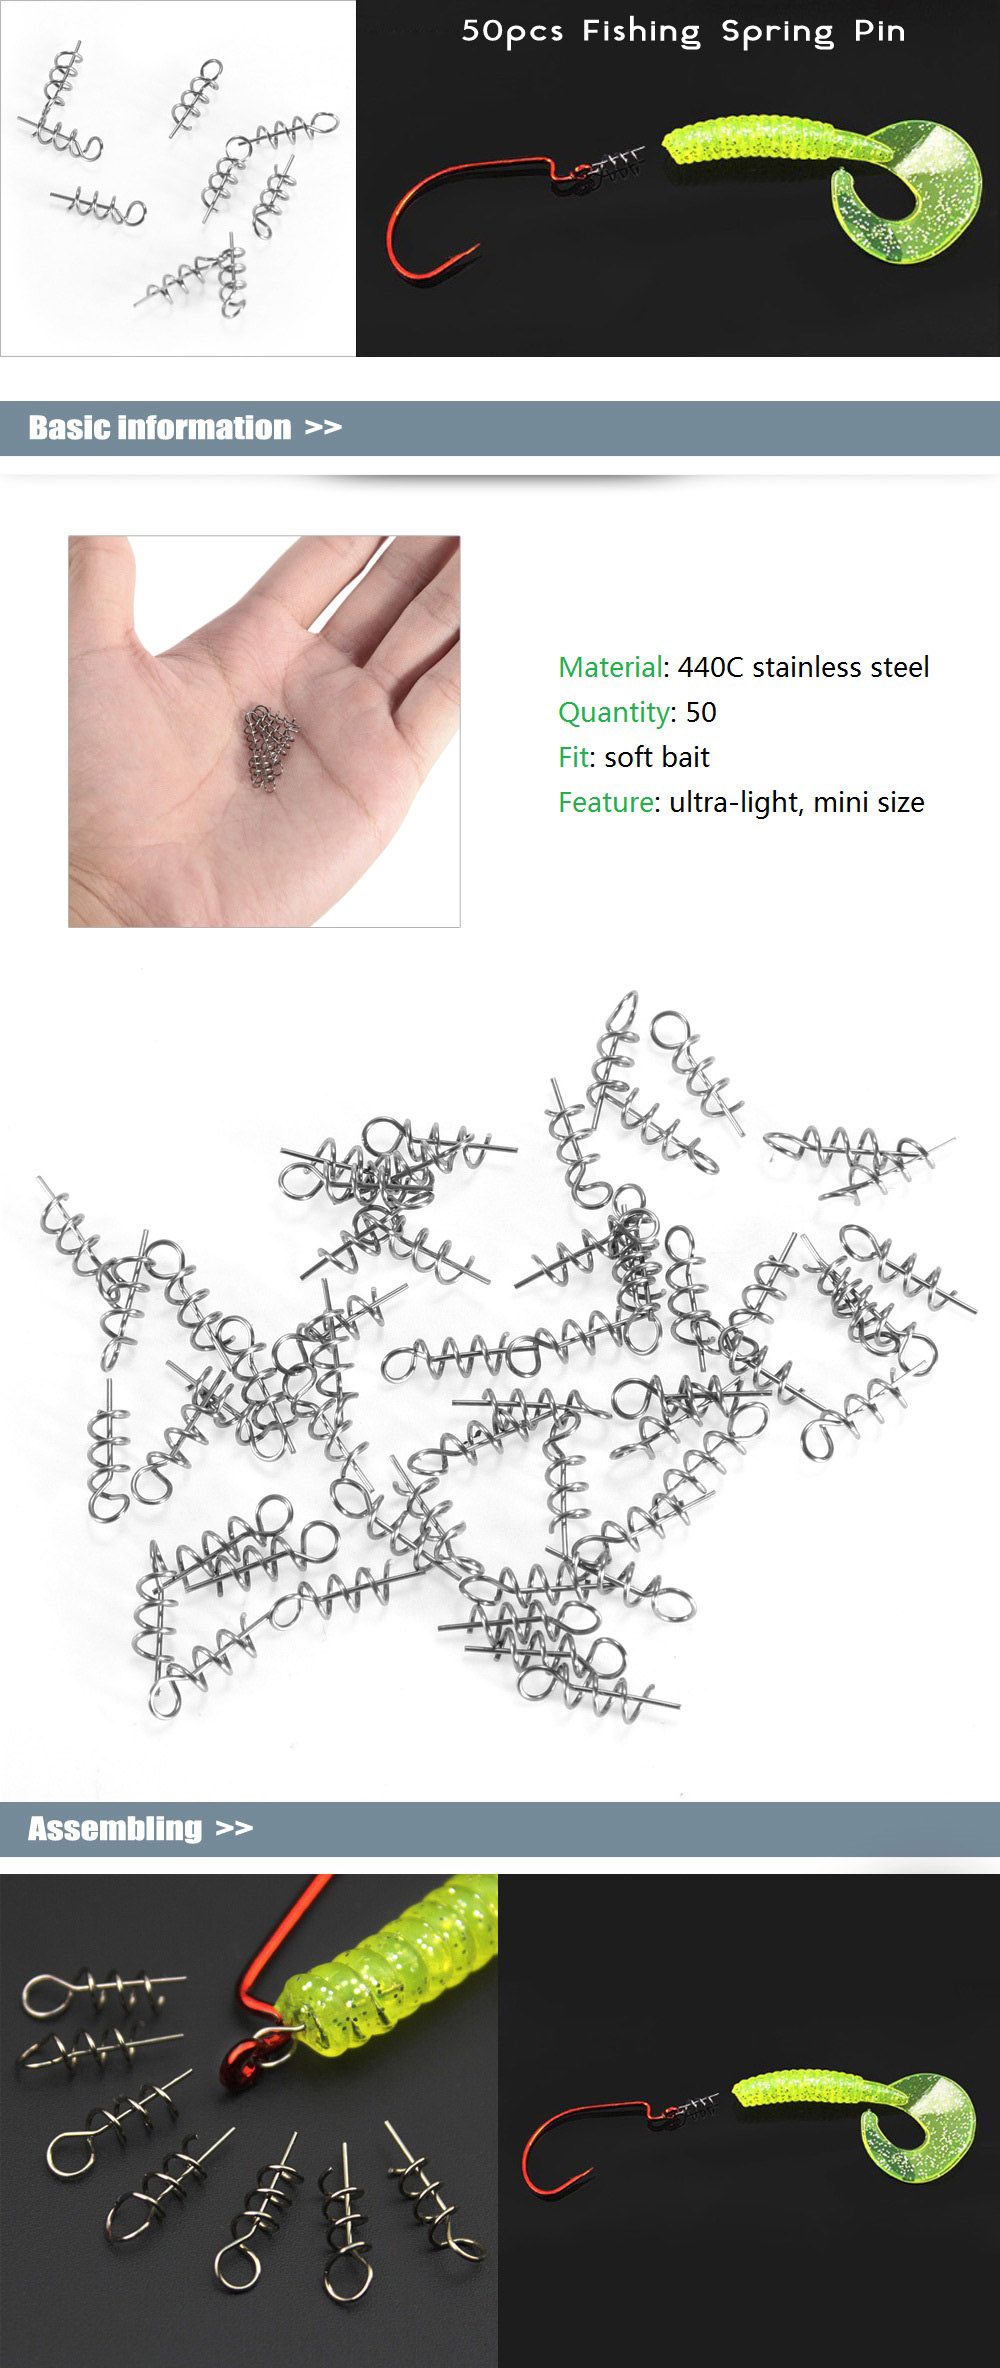 50pcs 440C Stainless Steel Fishing Spring Pin for Soft Bait